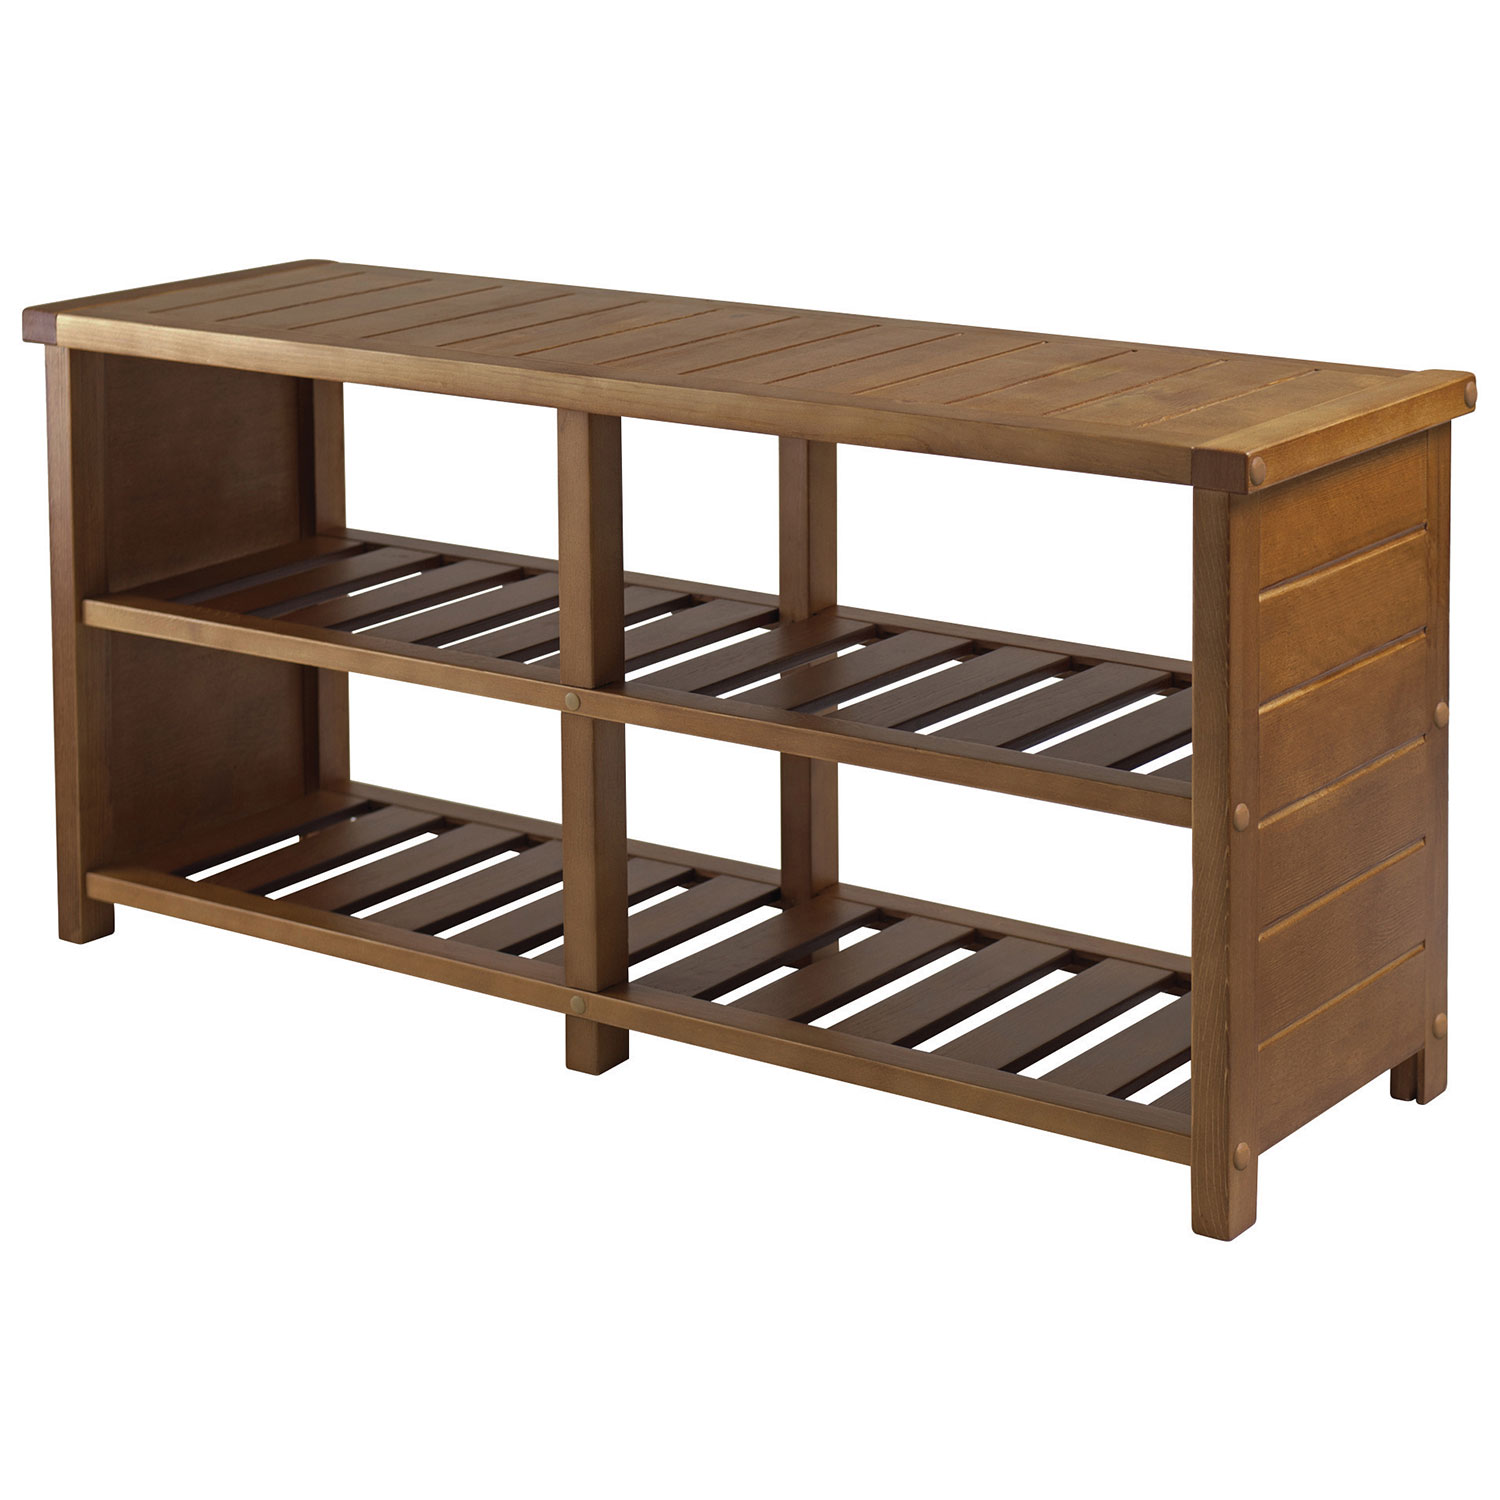 Keystone 2 Shelf Shoe Storage Bench Teak Best Buy Canada